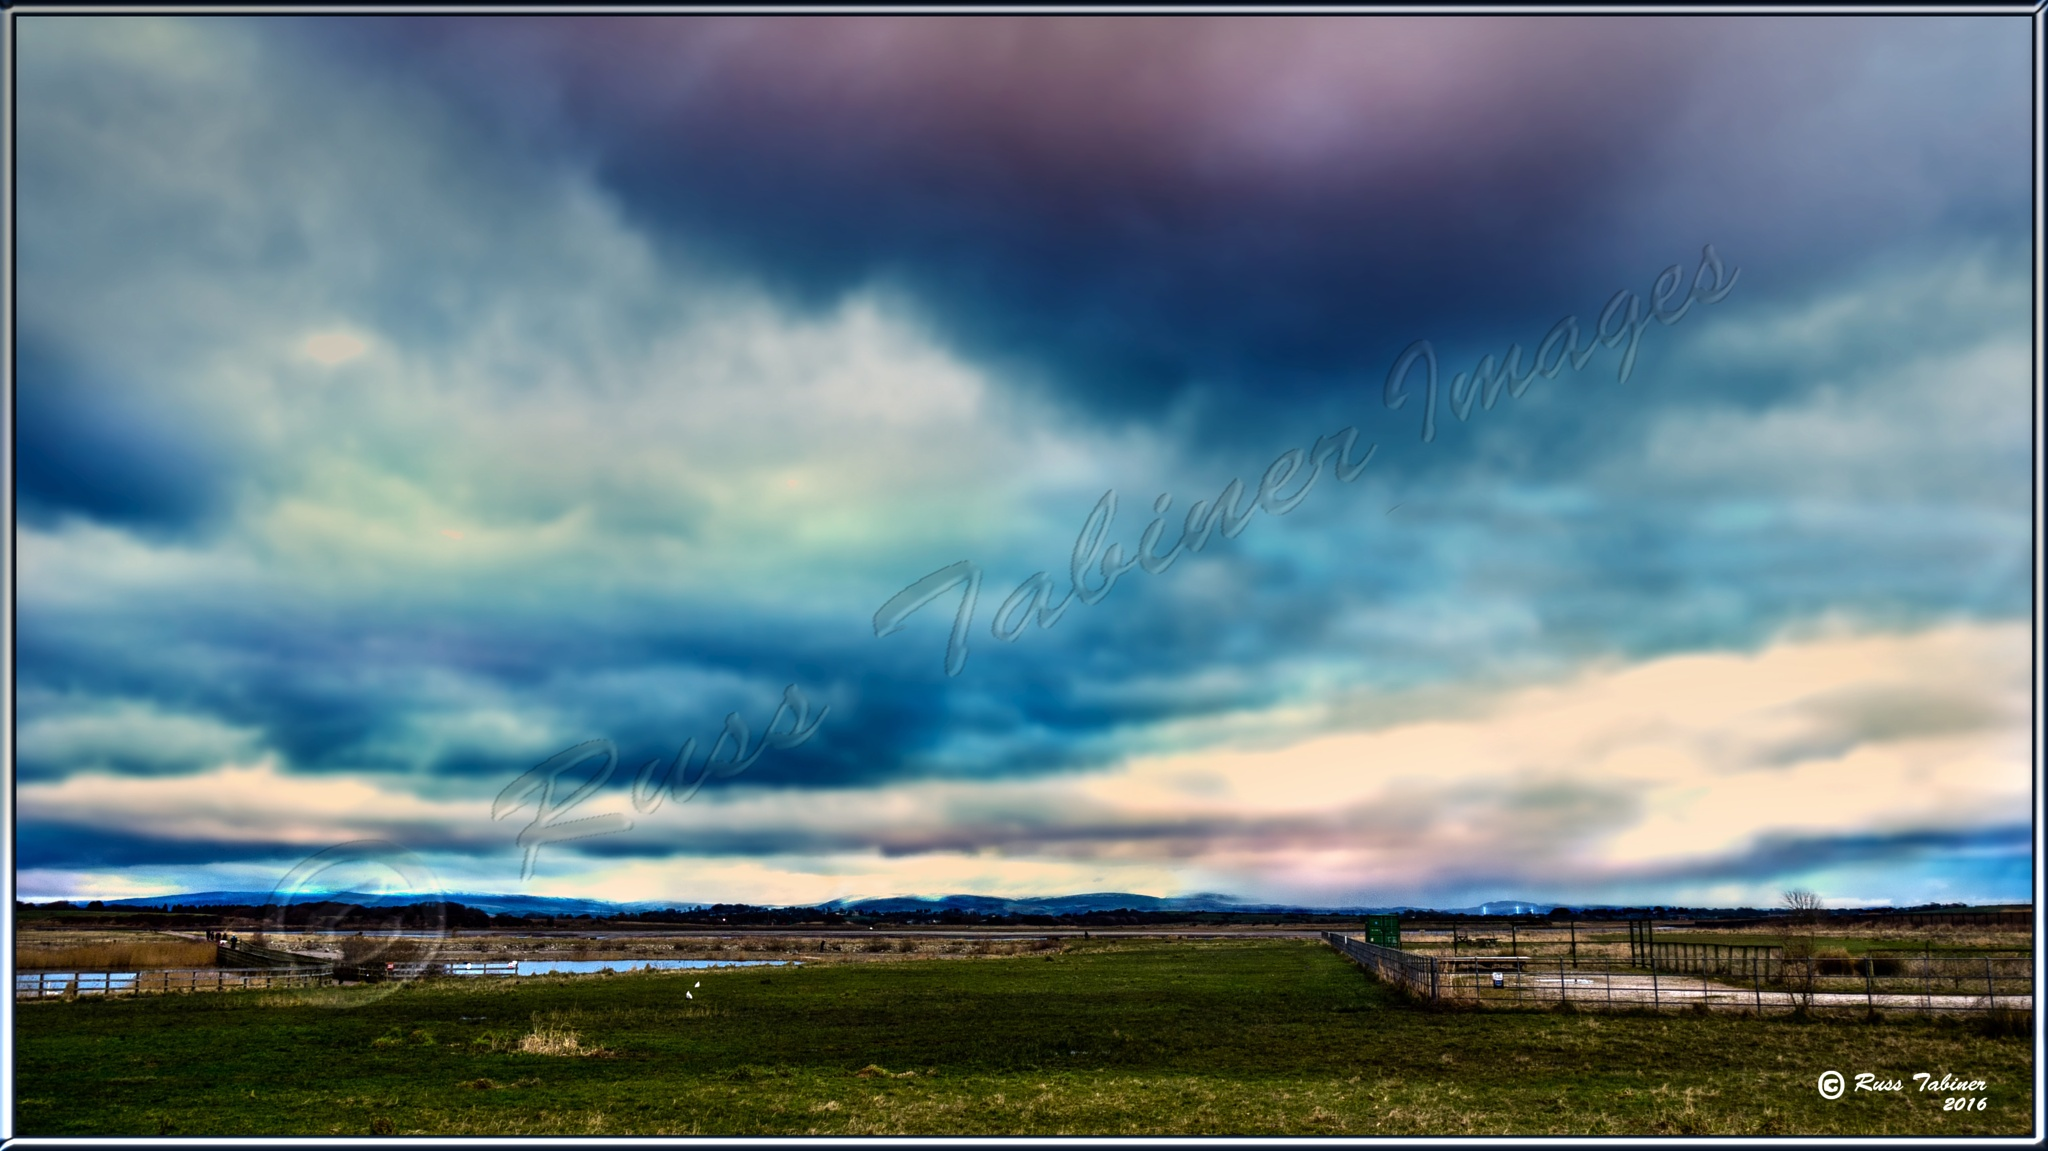 Drama in the sky by Crewman